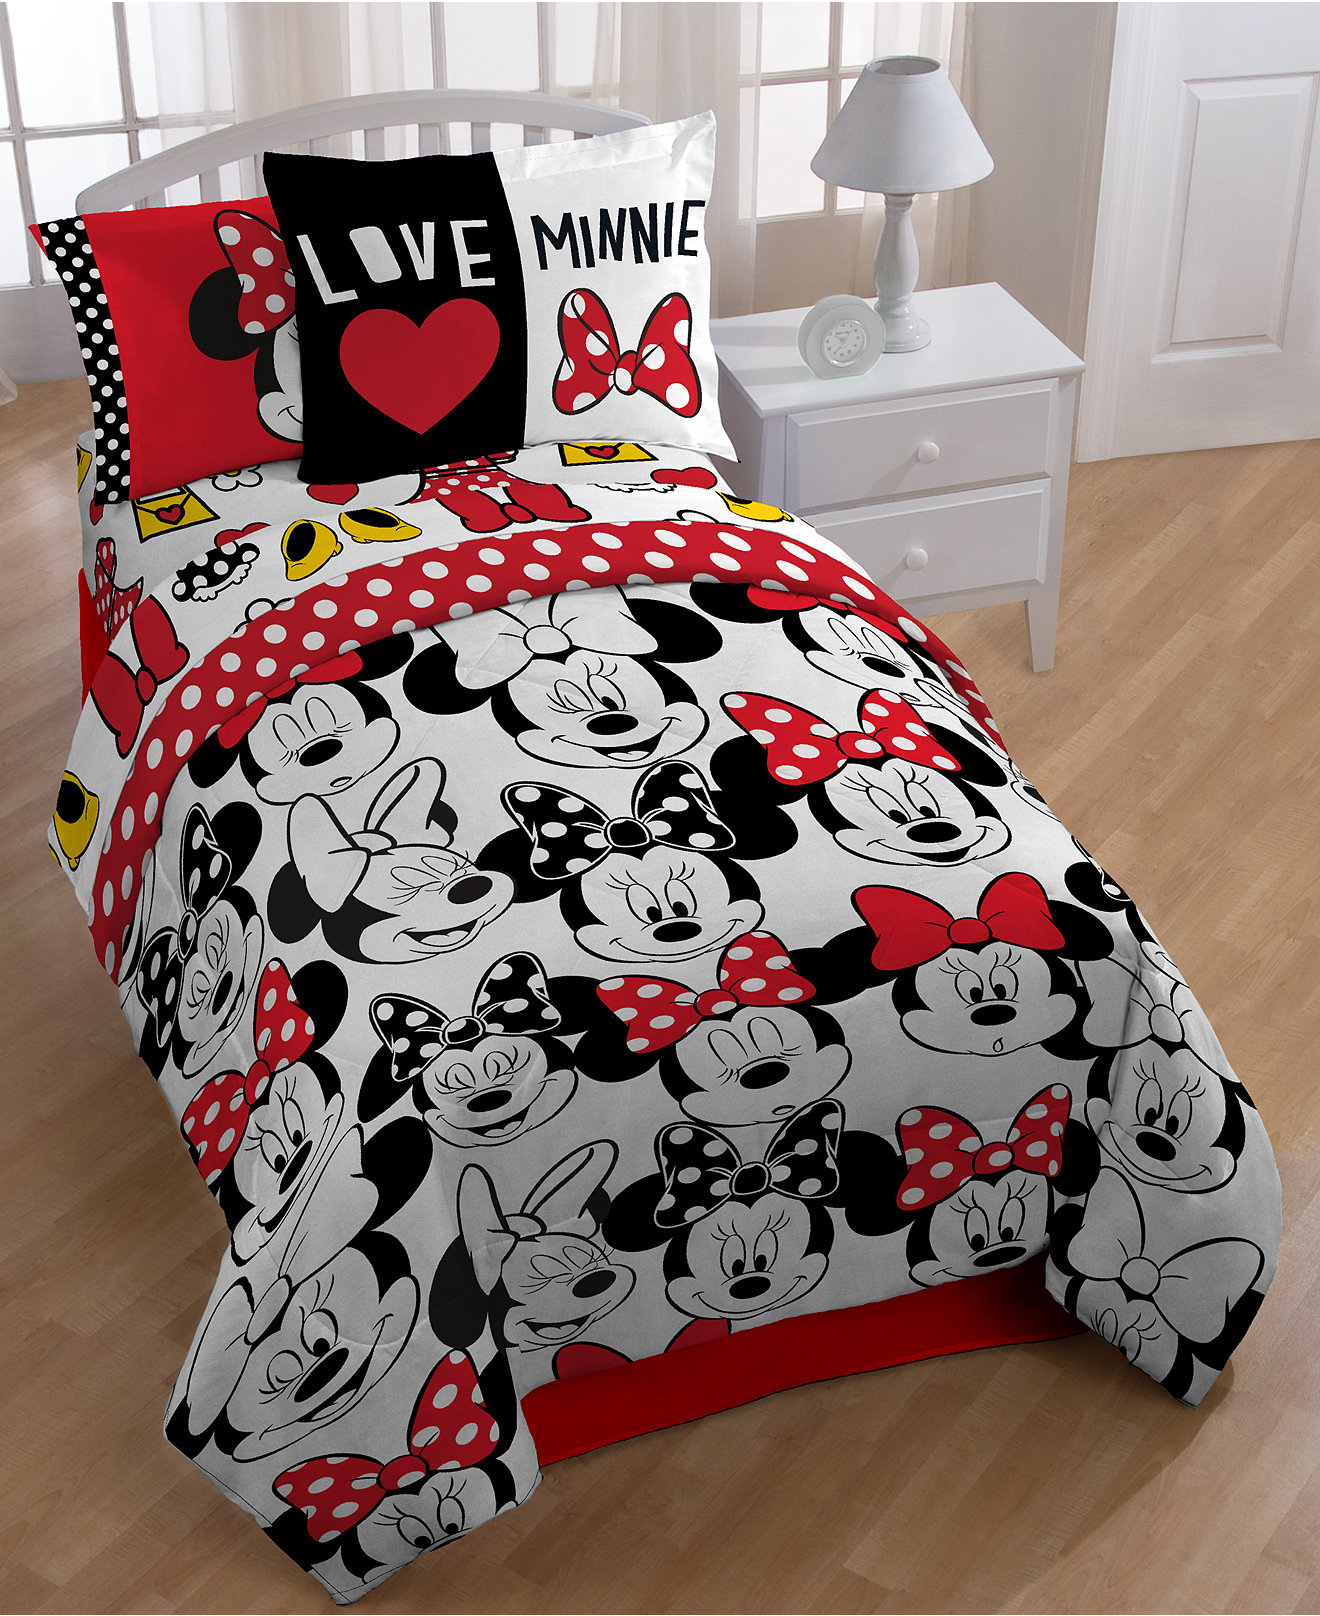 Baby cribs not made in china - Disney S Minnie Who Bedding Collection